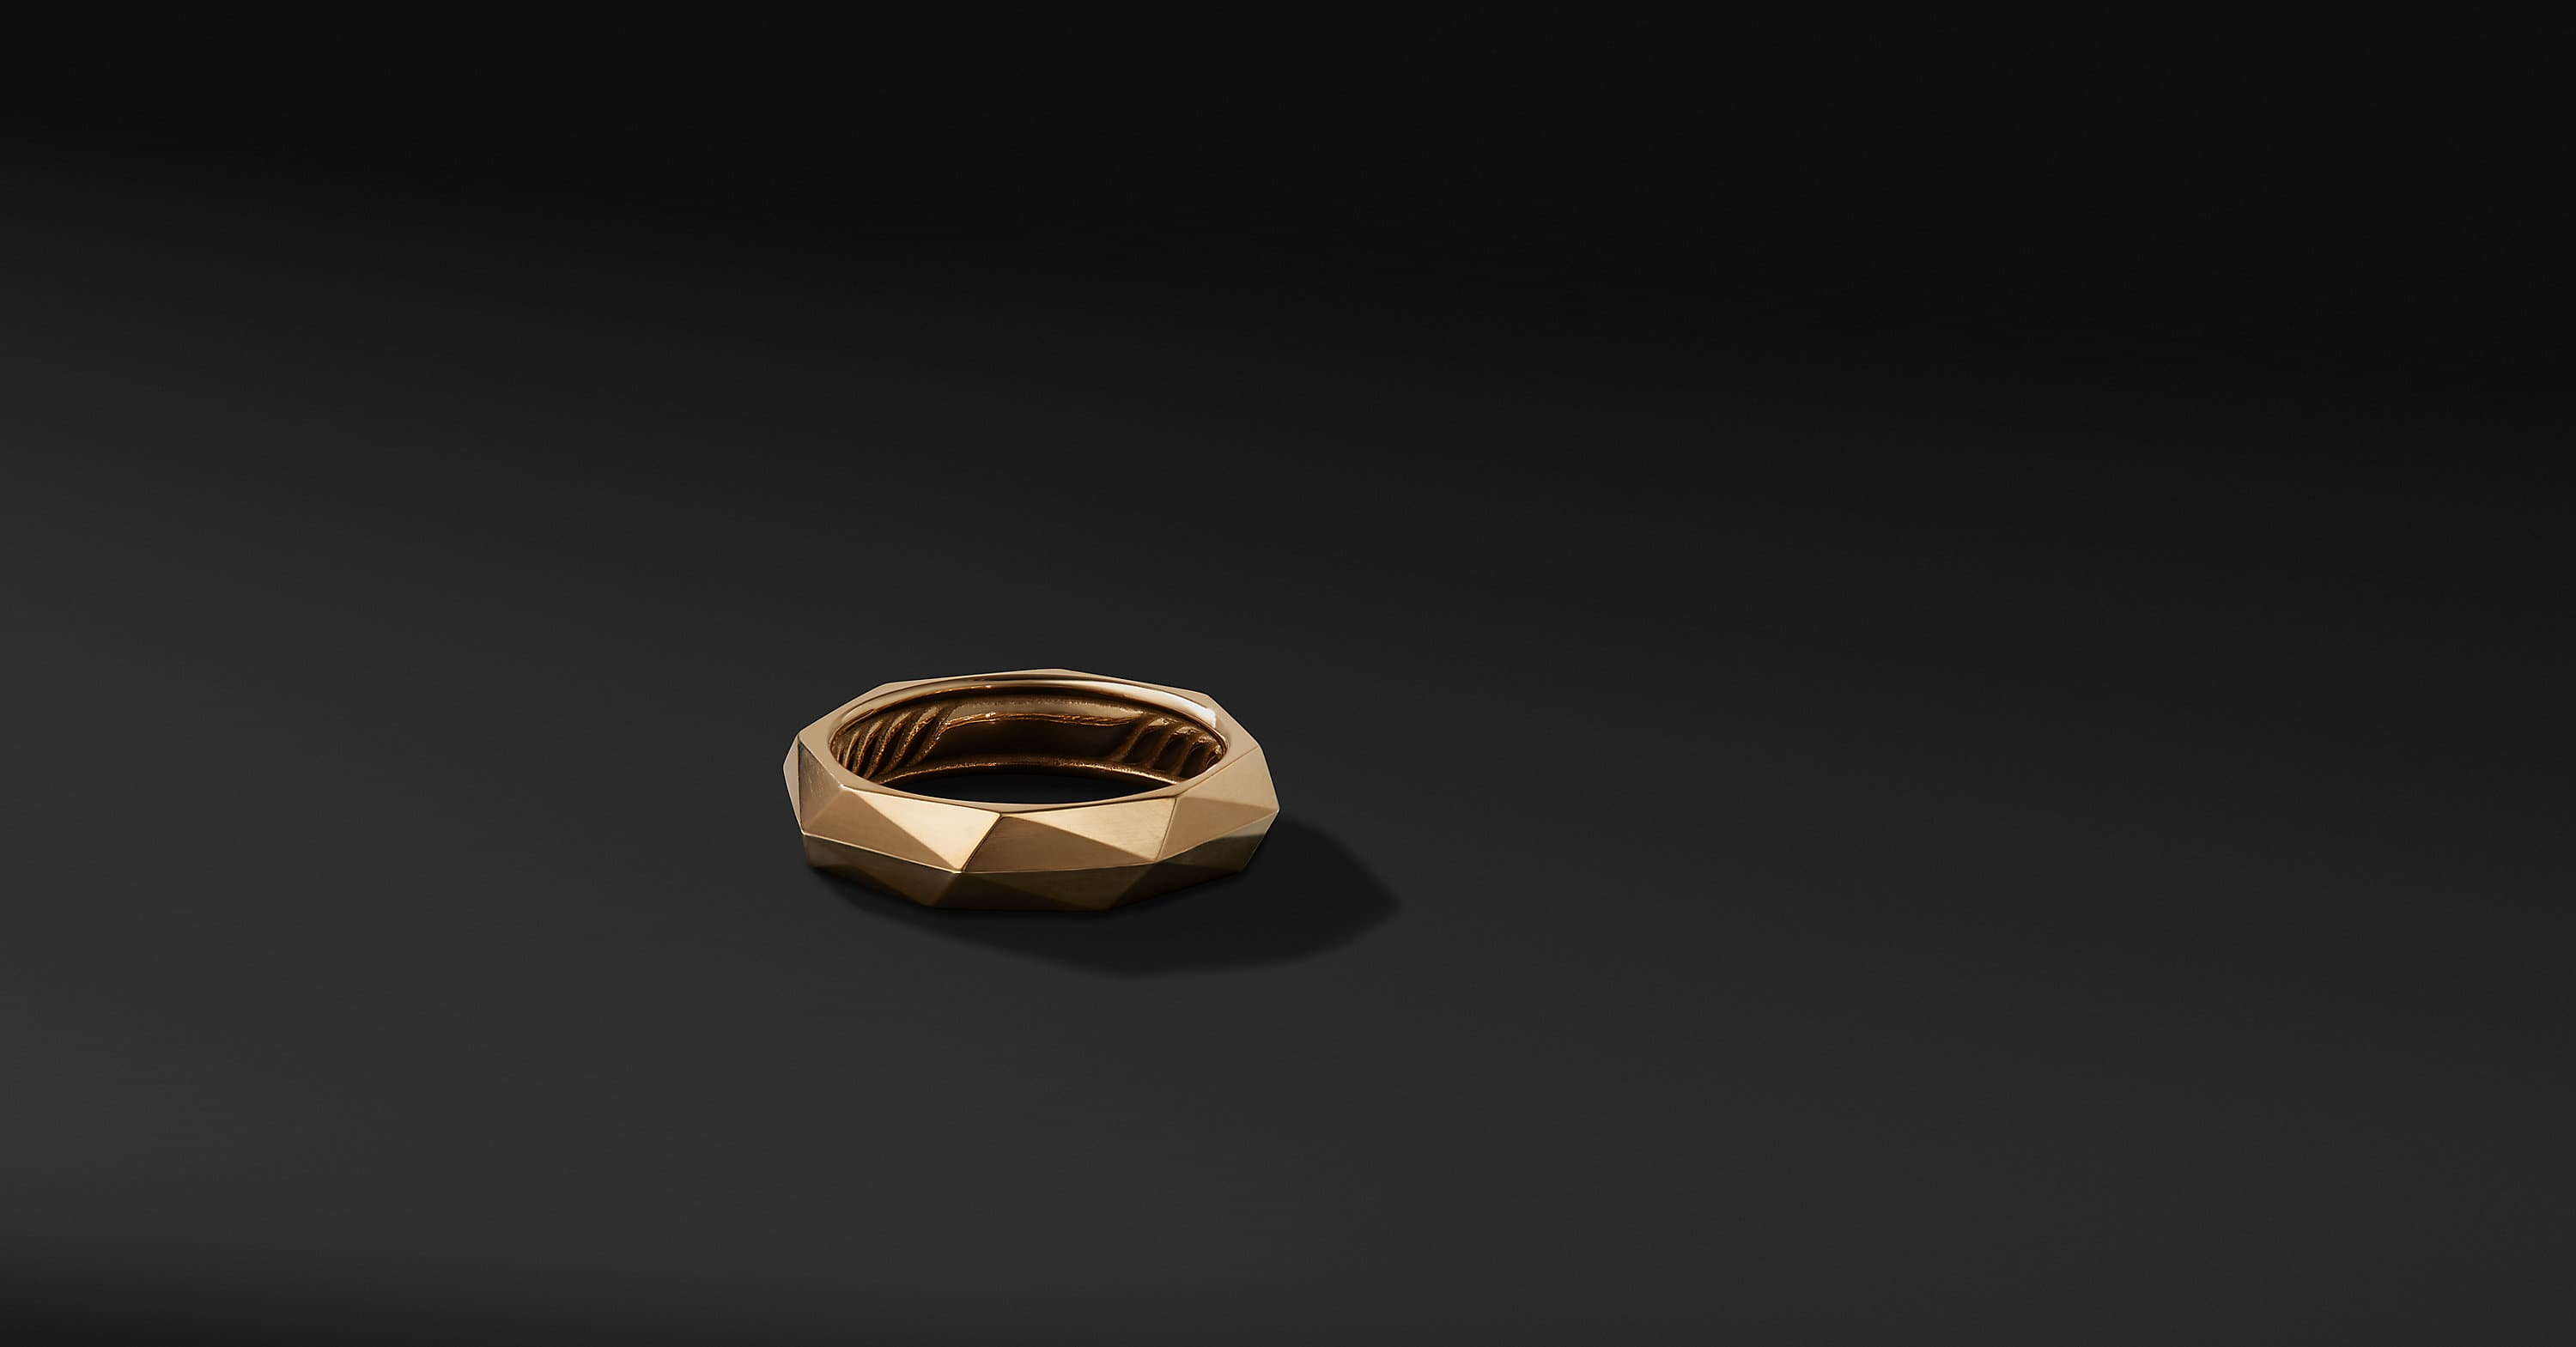 Faceted Band Ring in 18K Yellow Gold, 6mm